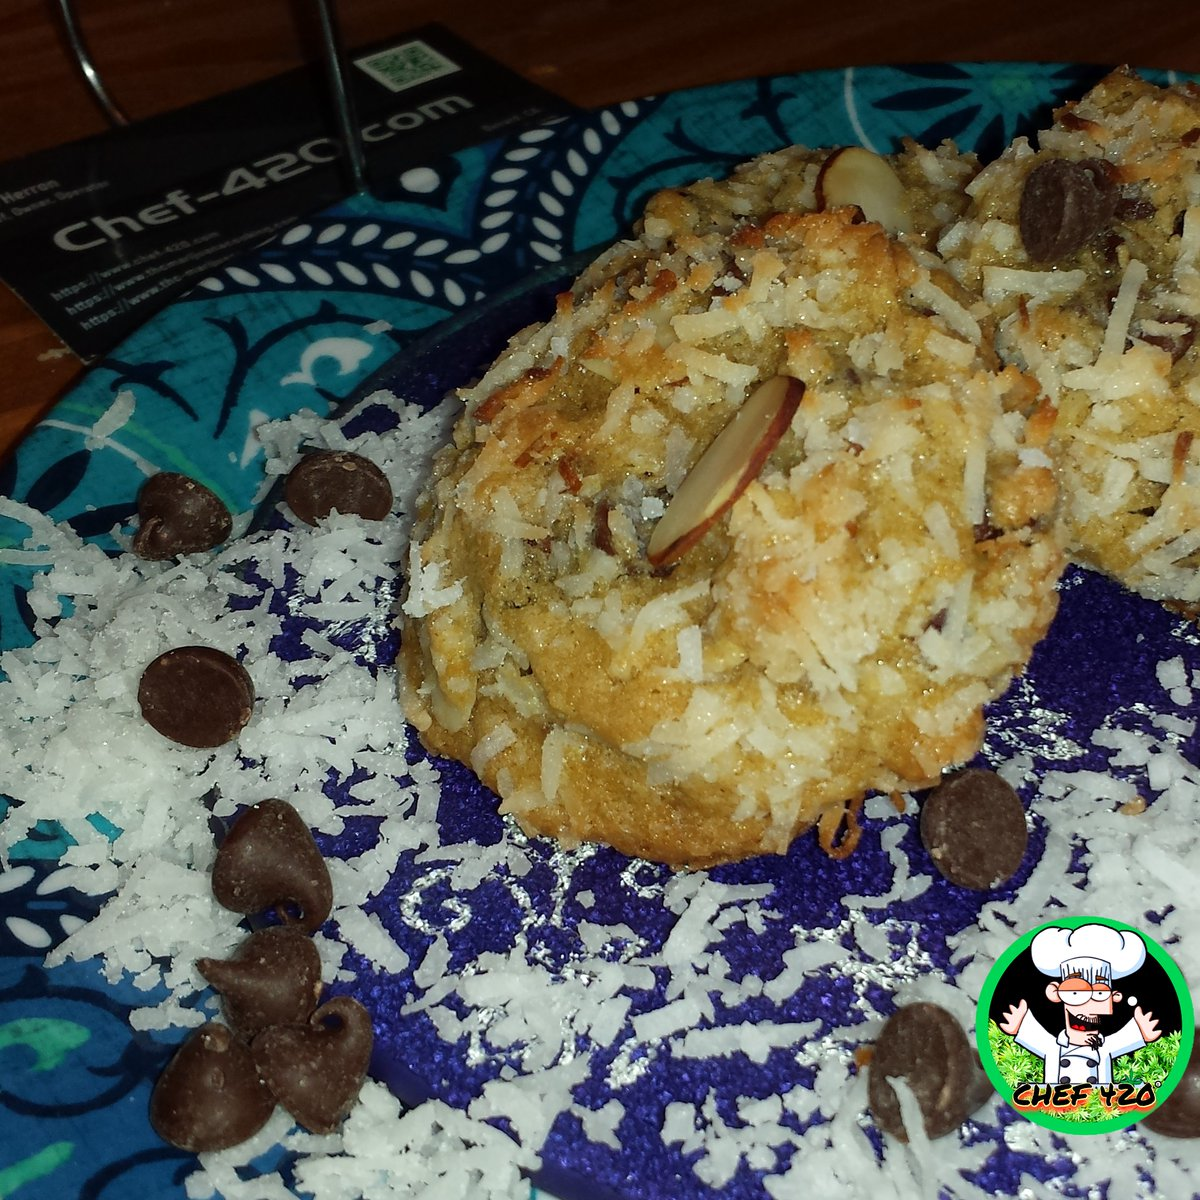 By chef 420 Coconut Almond Joy Cookies are the perfect blend of coconut, semi sweet chocolate and sliced almonds. Quick, Easy Recipe You know you want some.  https://t.co/jxwbEvR6s9  #Chef420 #Edibles #CookingWithCannabis #CannabisChef #CannabisRecipes #InfusedRecipes #420 https://t.co/aP0Gt5JIYy